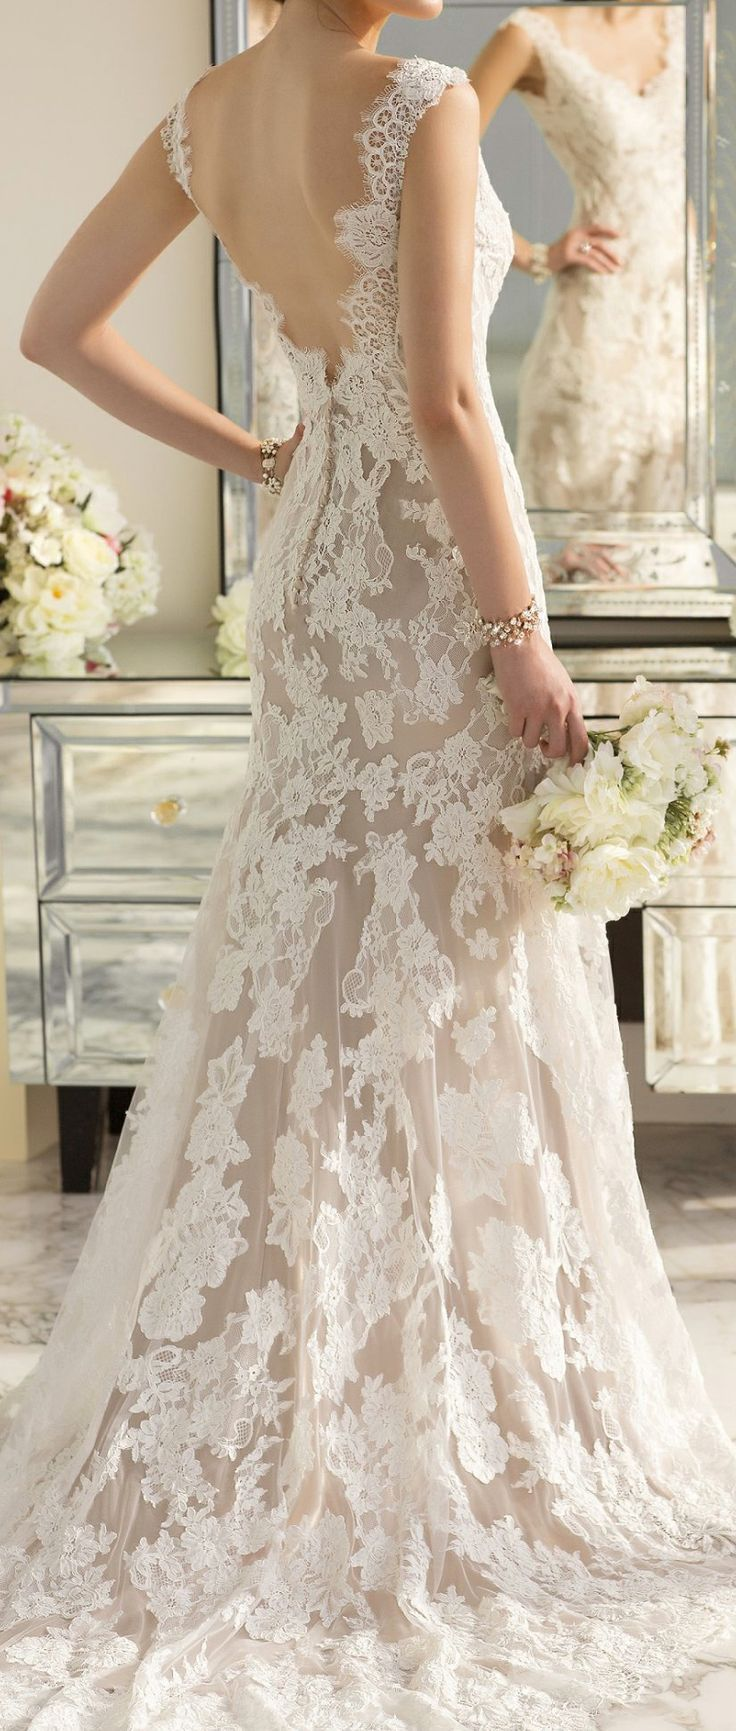 lace wedding dresses but I want the underlying color to be white